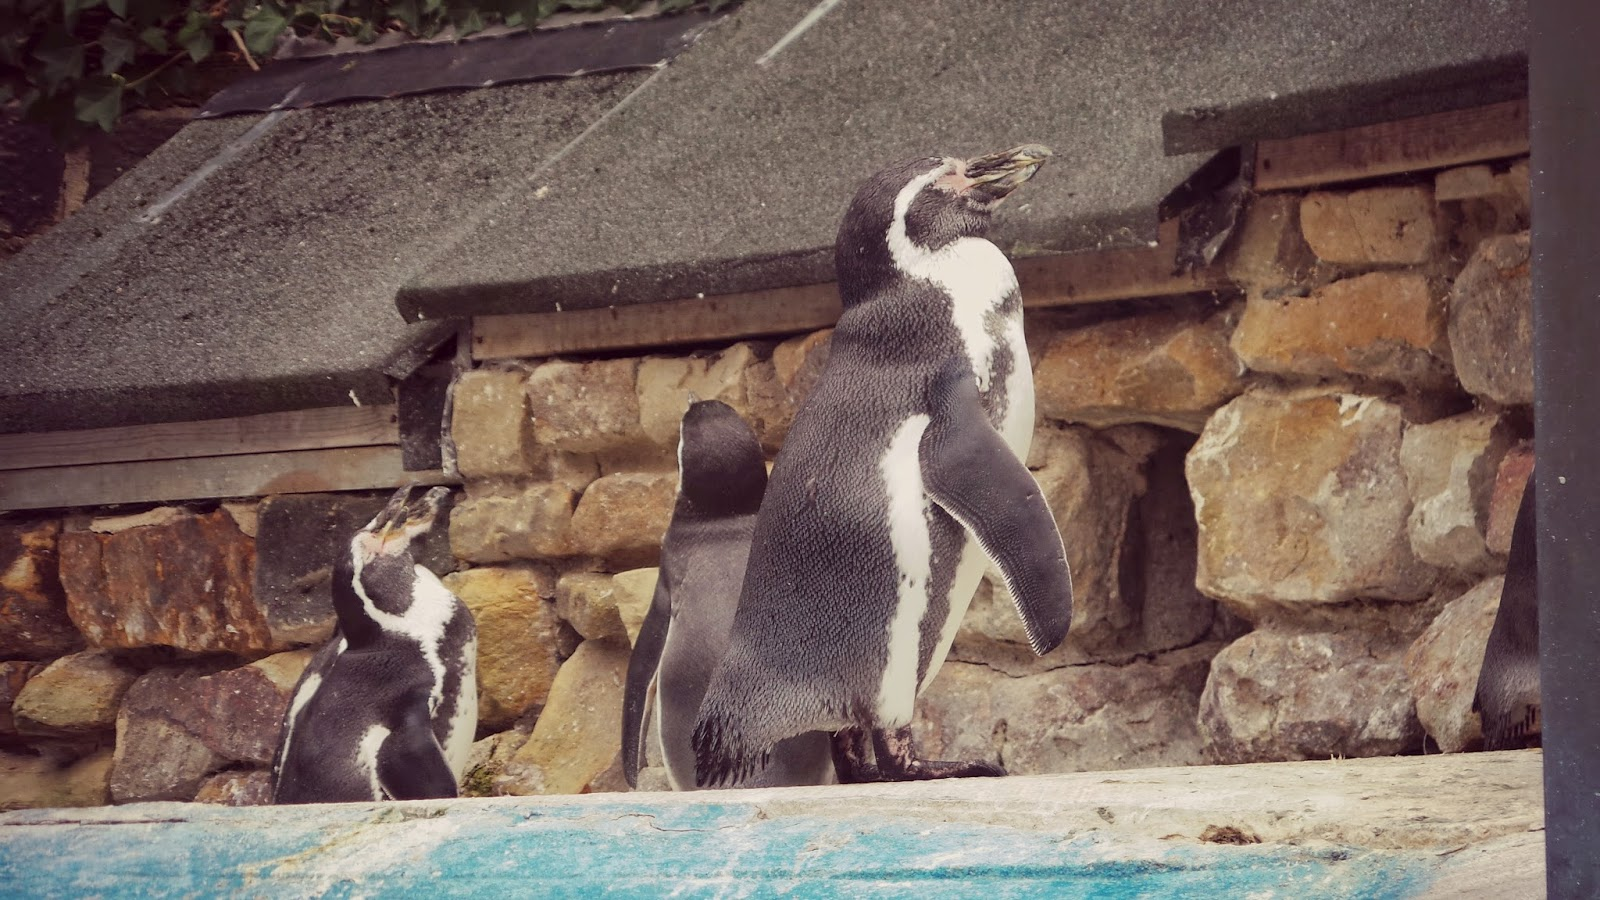 Feed the penguins at harewood house yorkshire